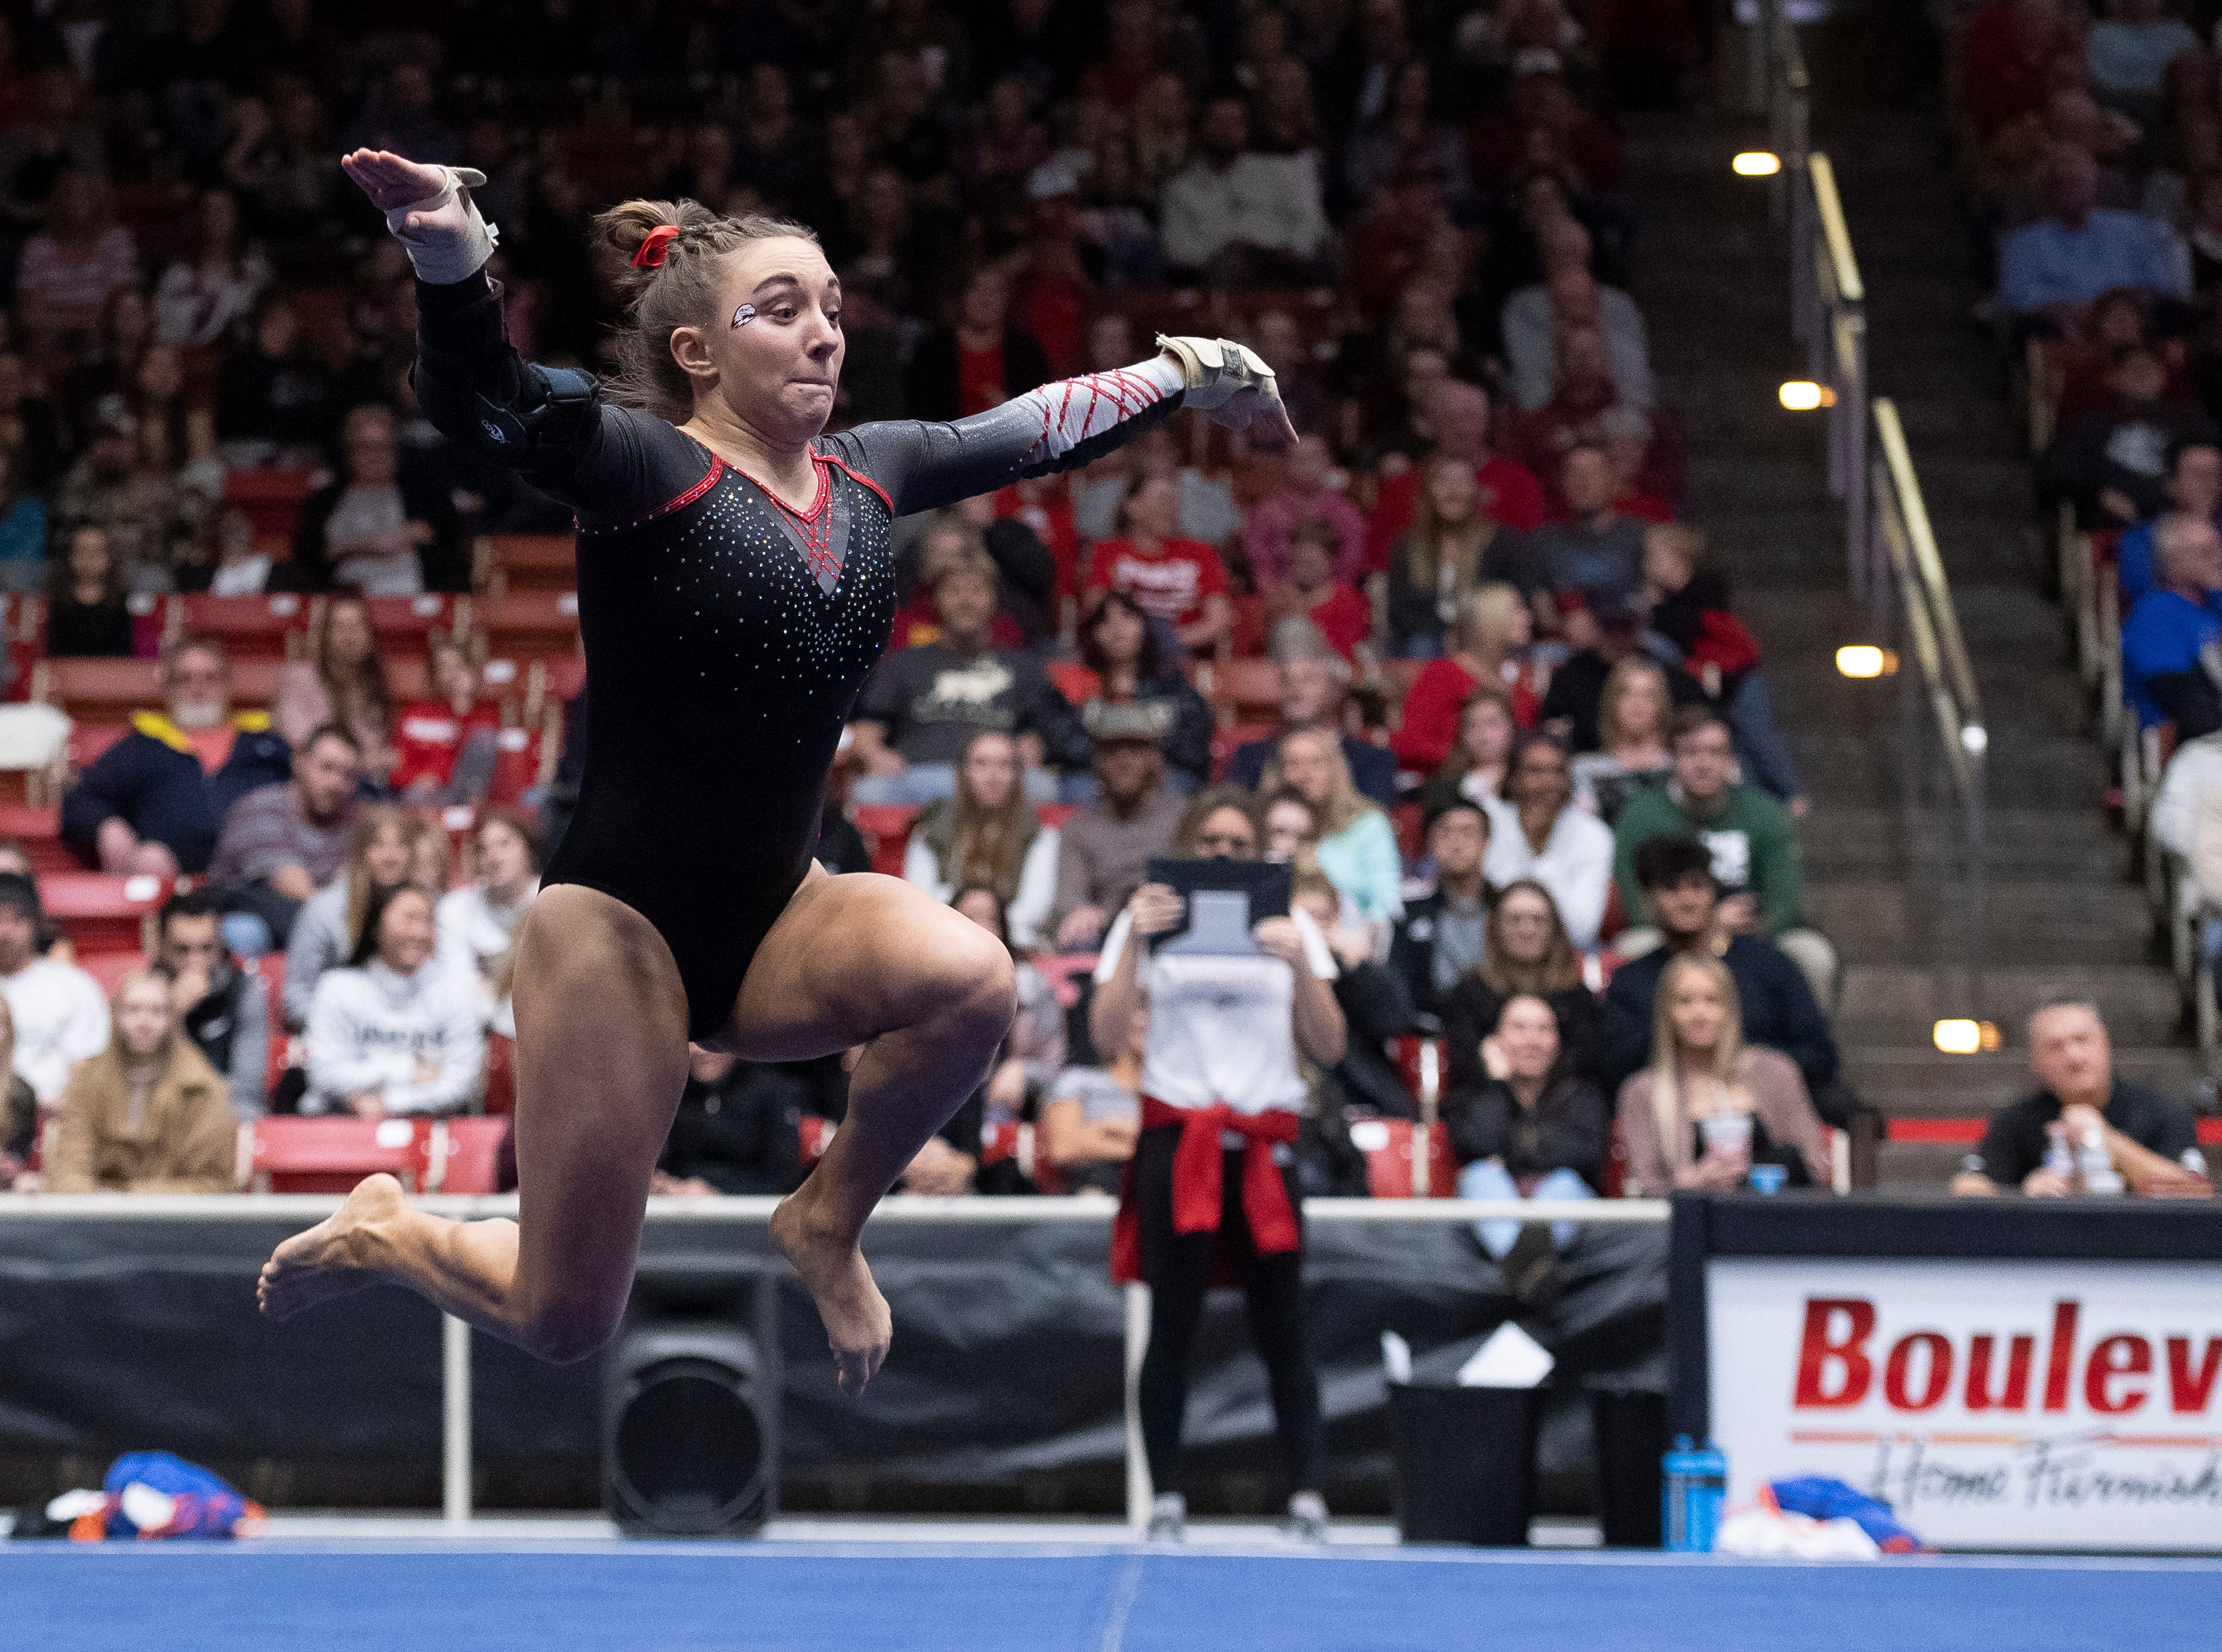 Southern Utah University junior Madison McBride competes against Boise State at the America First Event Center Friday, January 18, 2019.